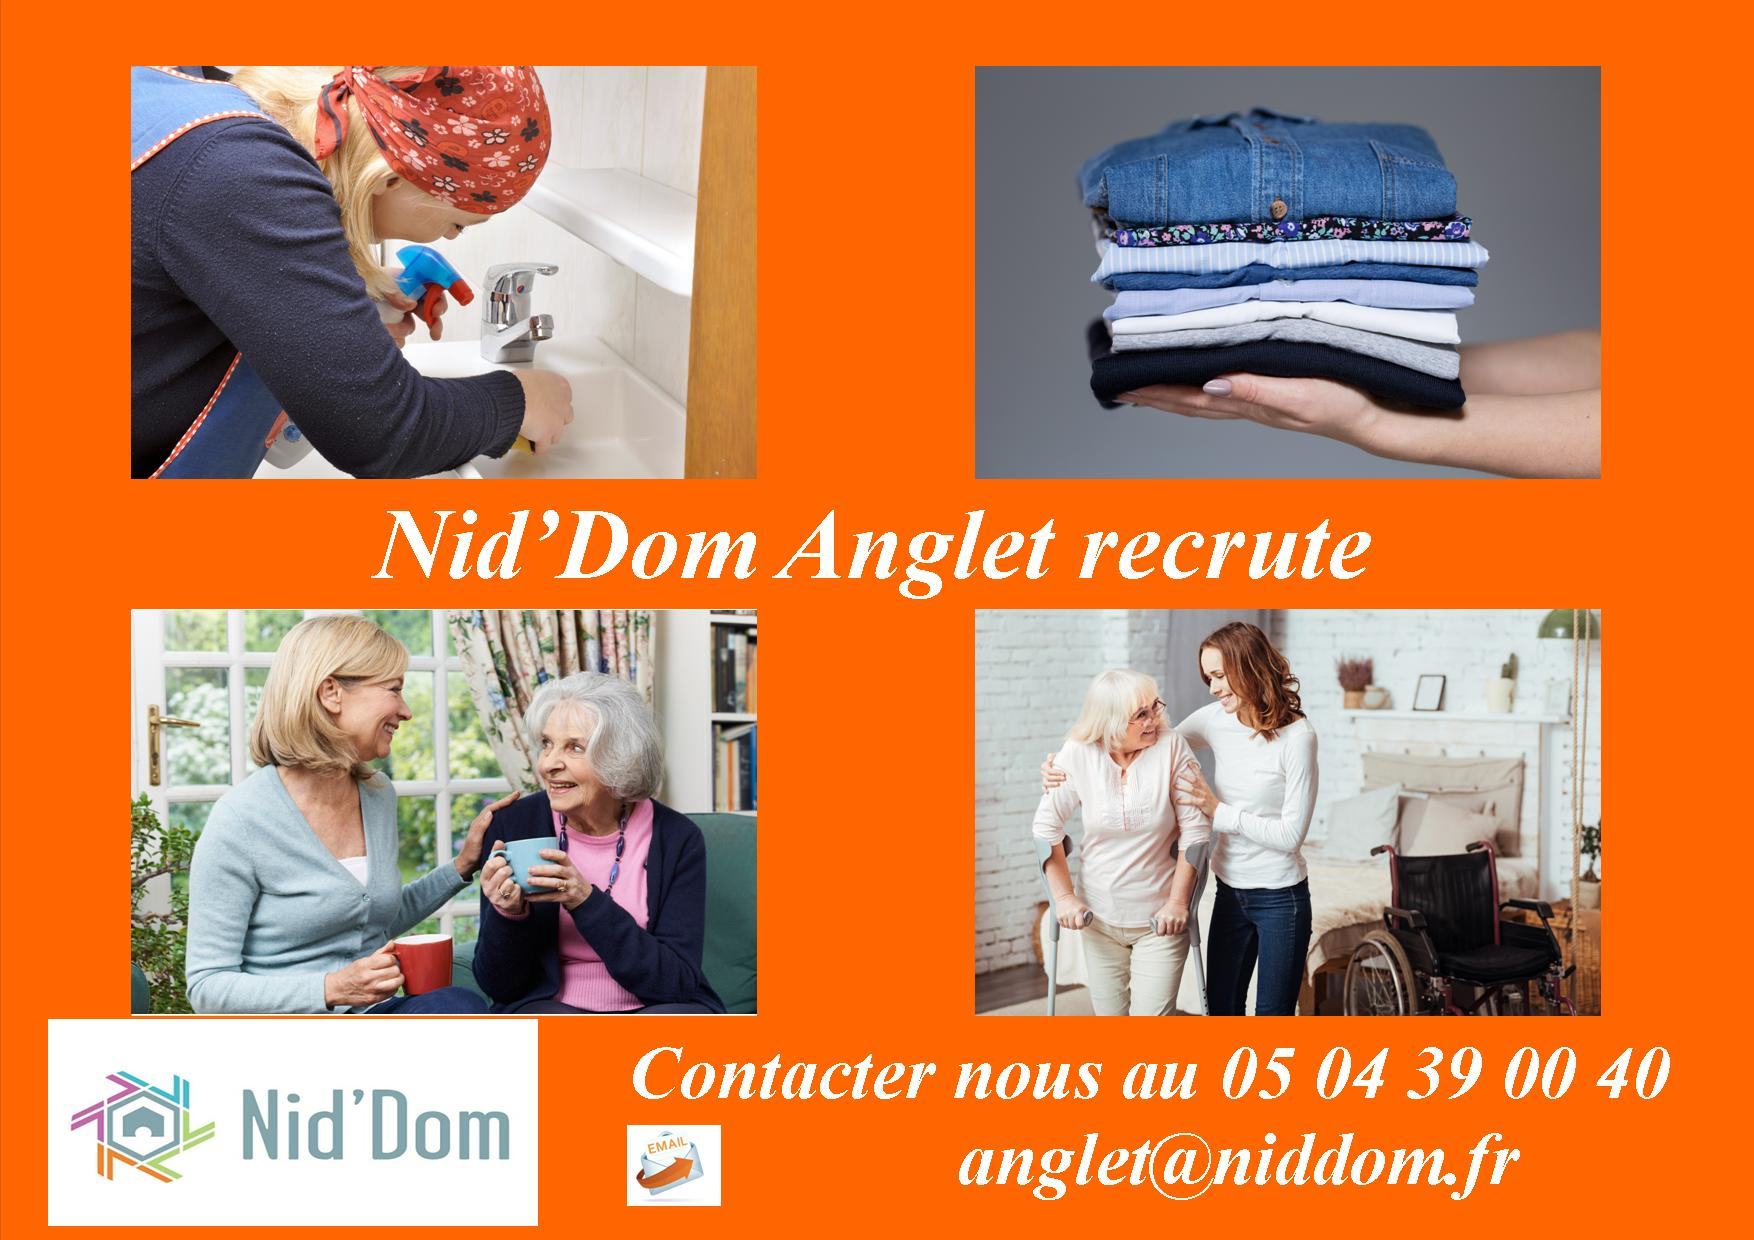 Nid'Dom Anglet recrute